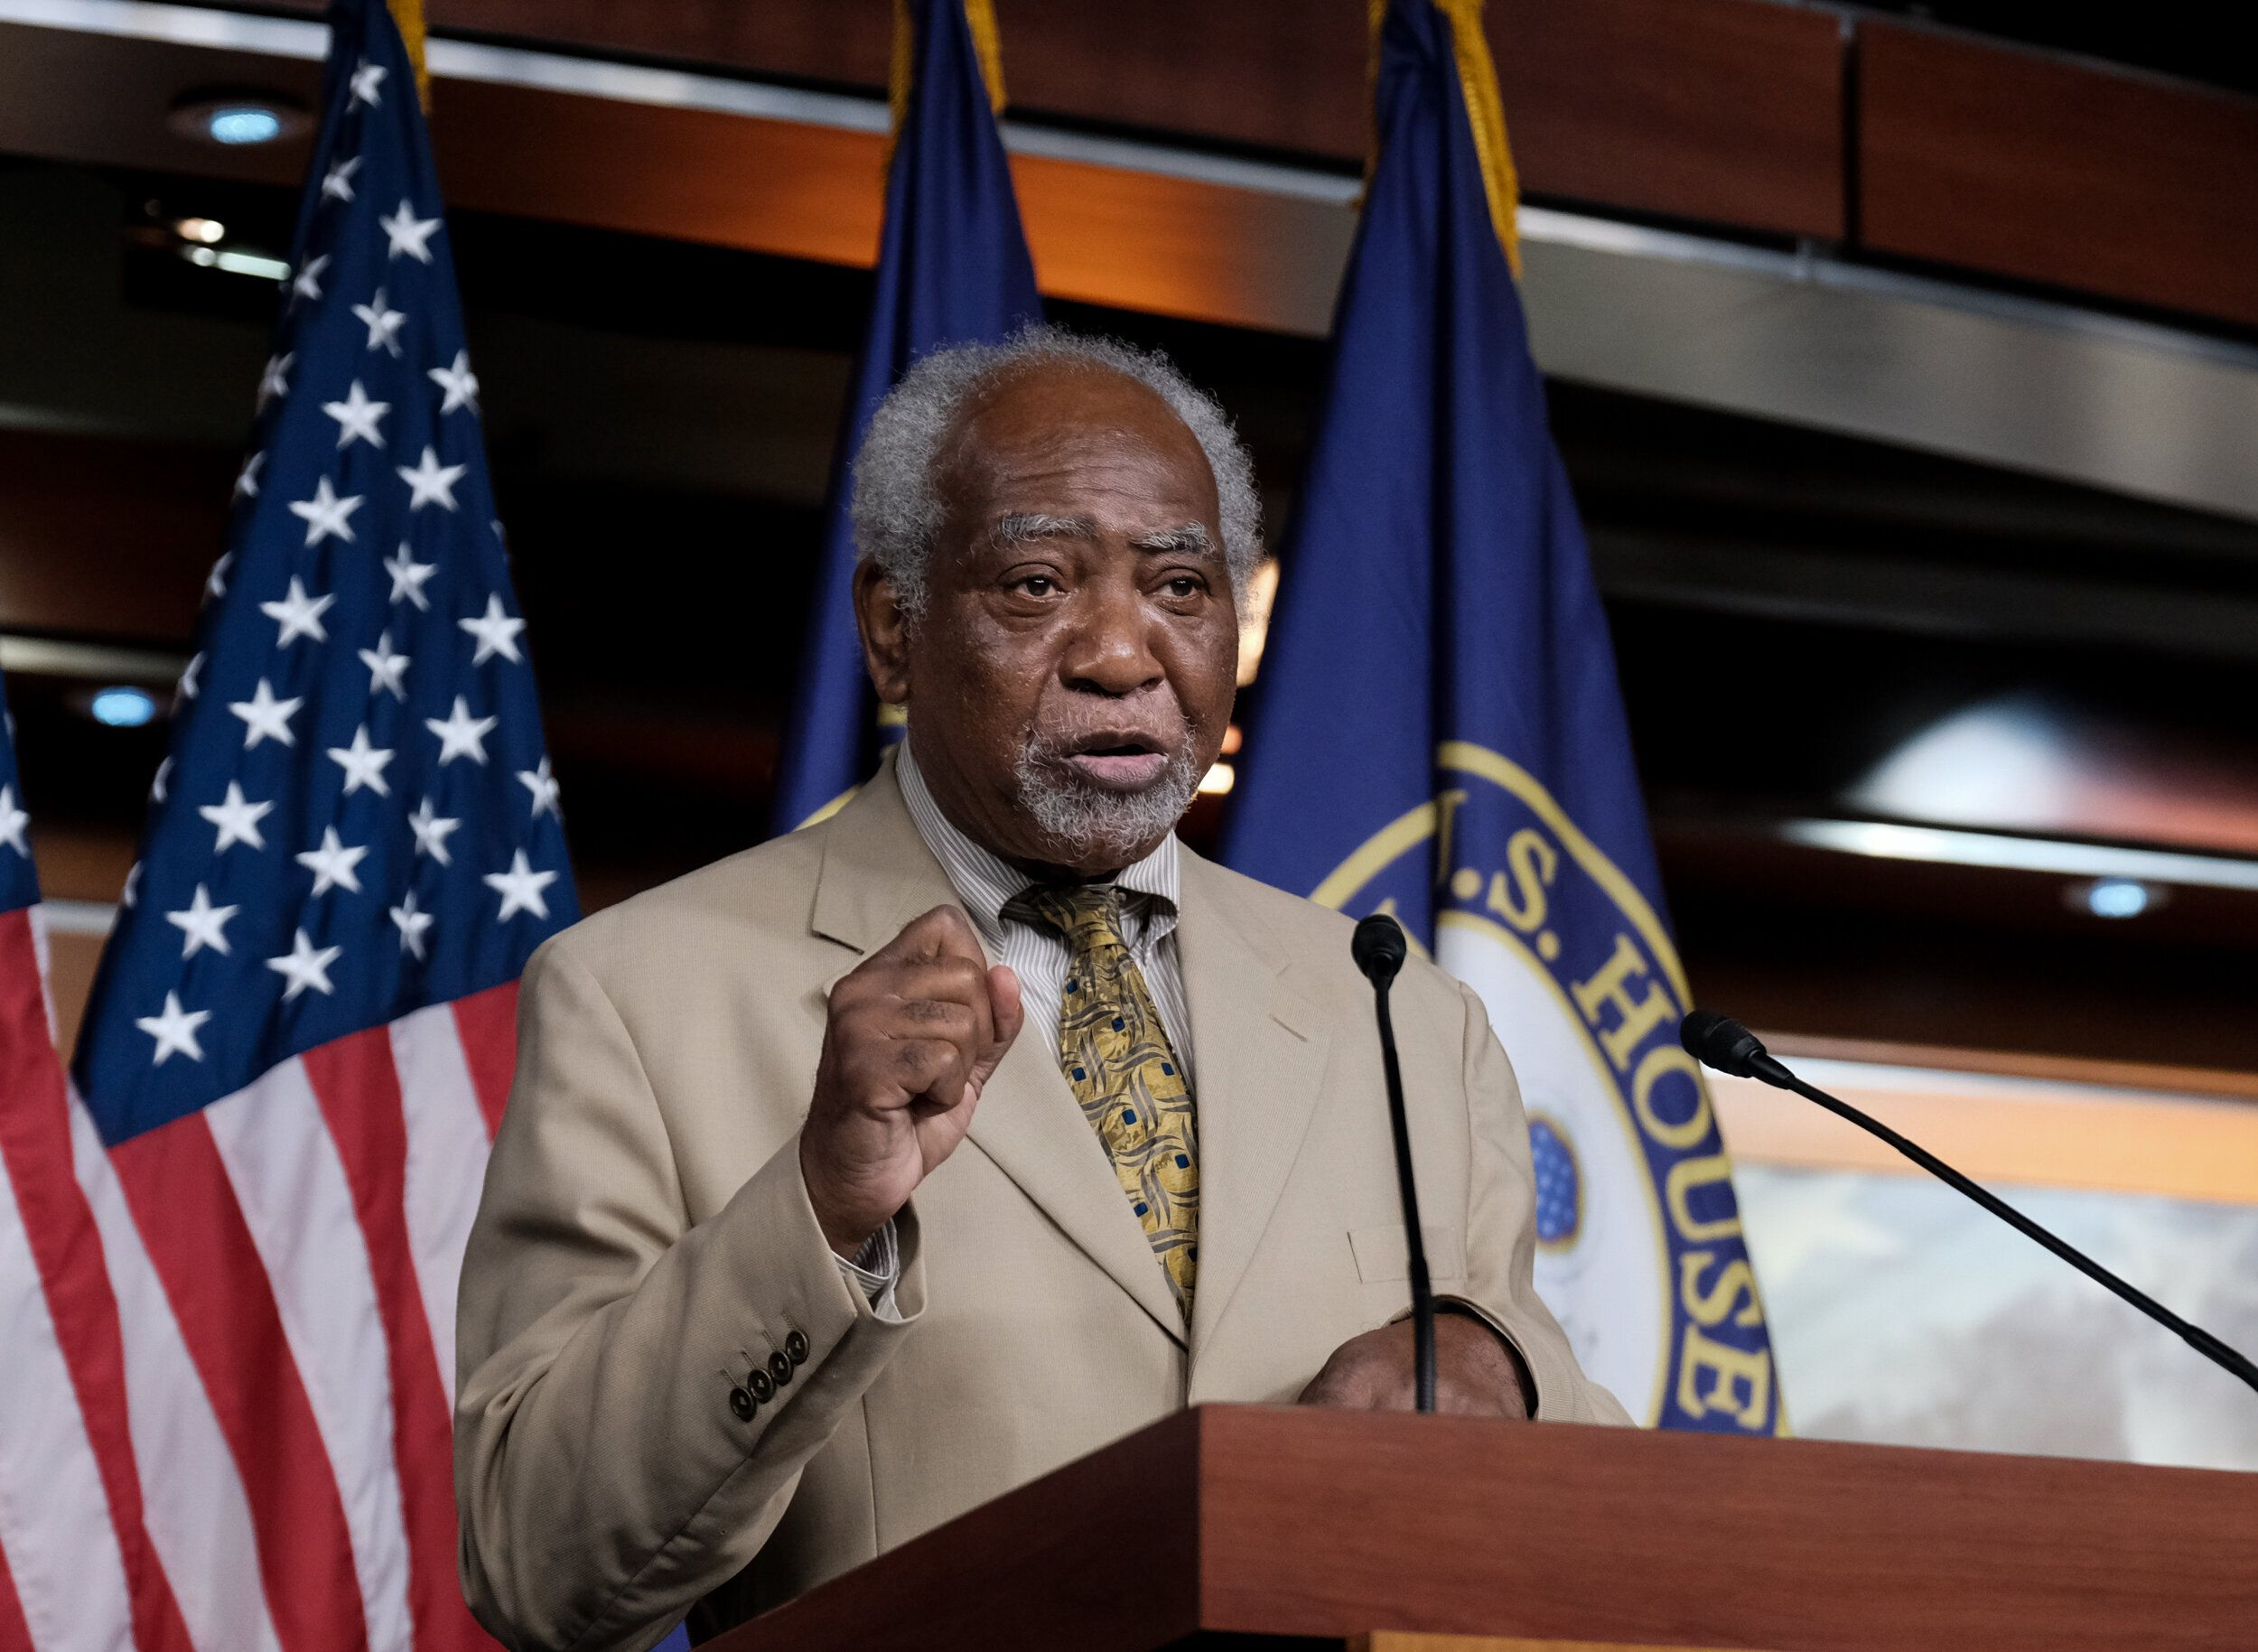 Rep. Danny Davis, 79, has represented Chicago's West Side since 1997. His seniority has earned him an influential post on the